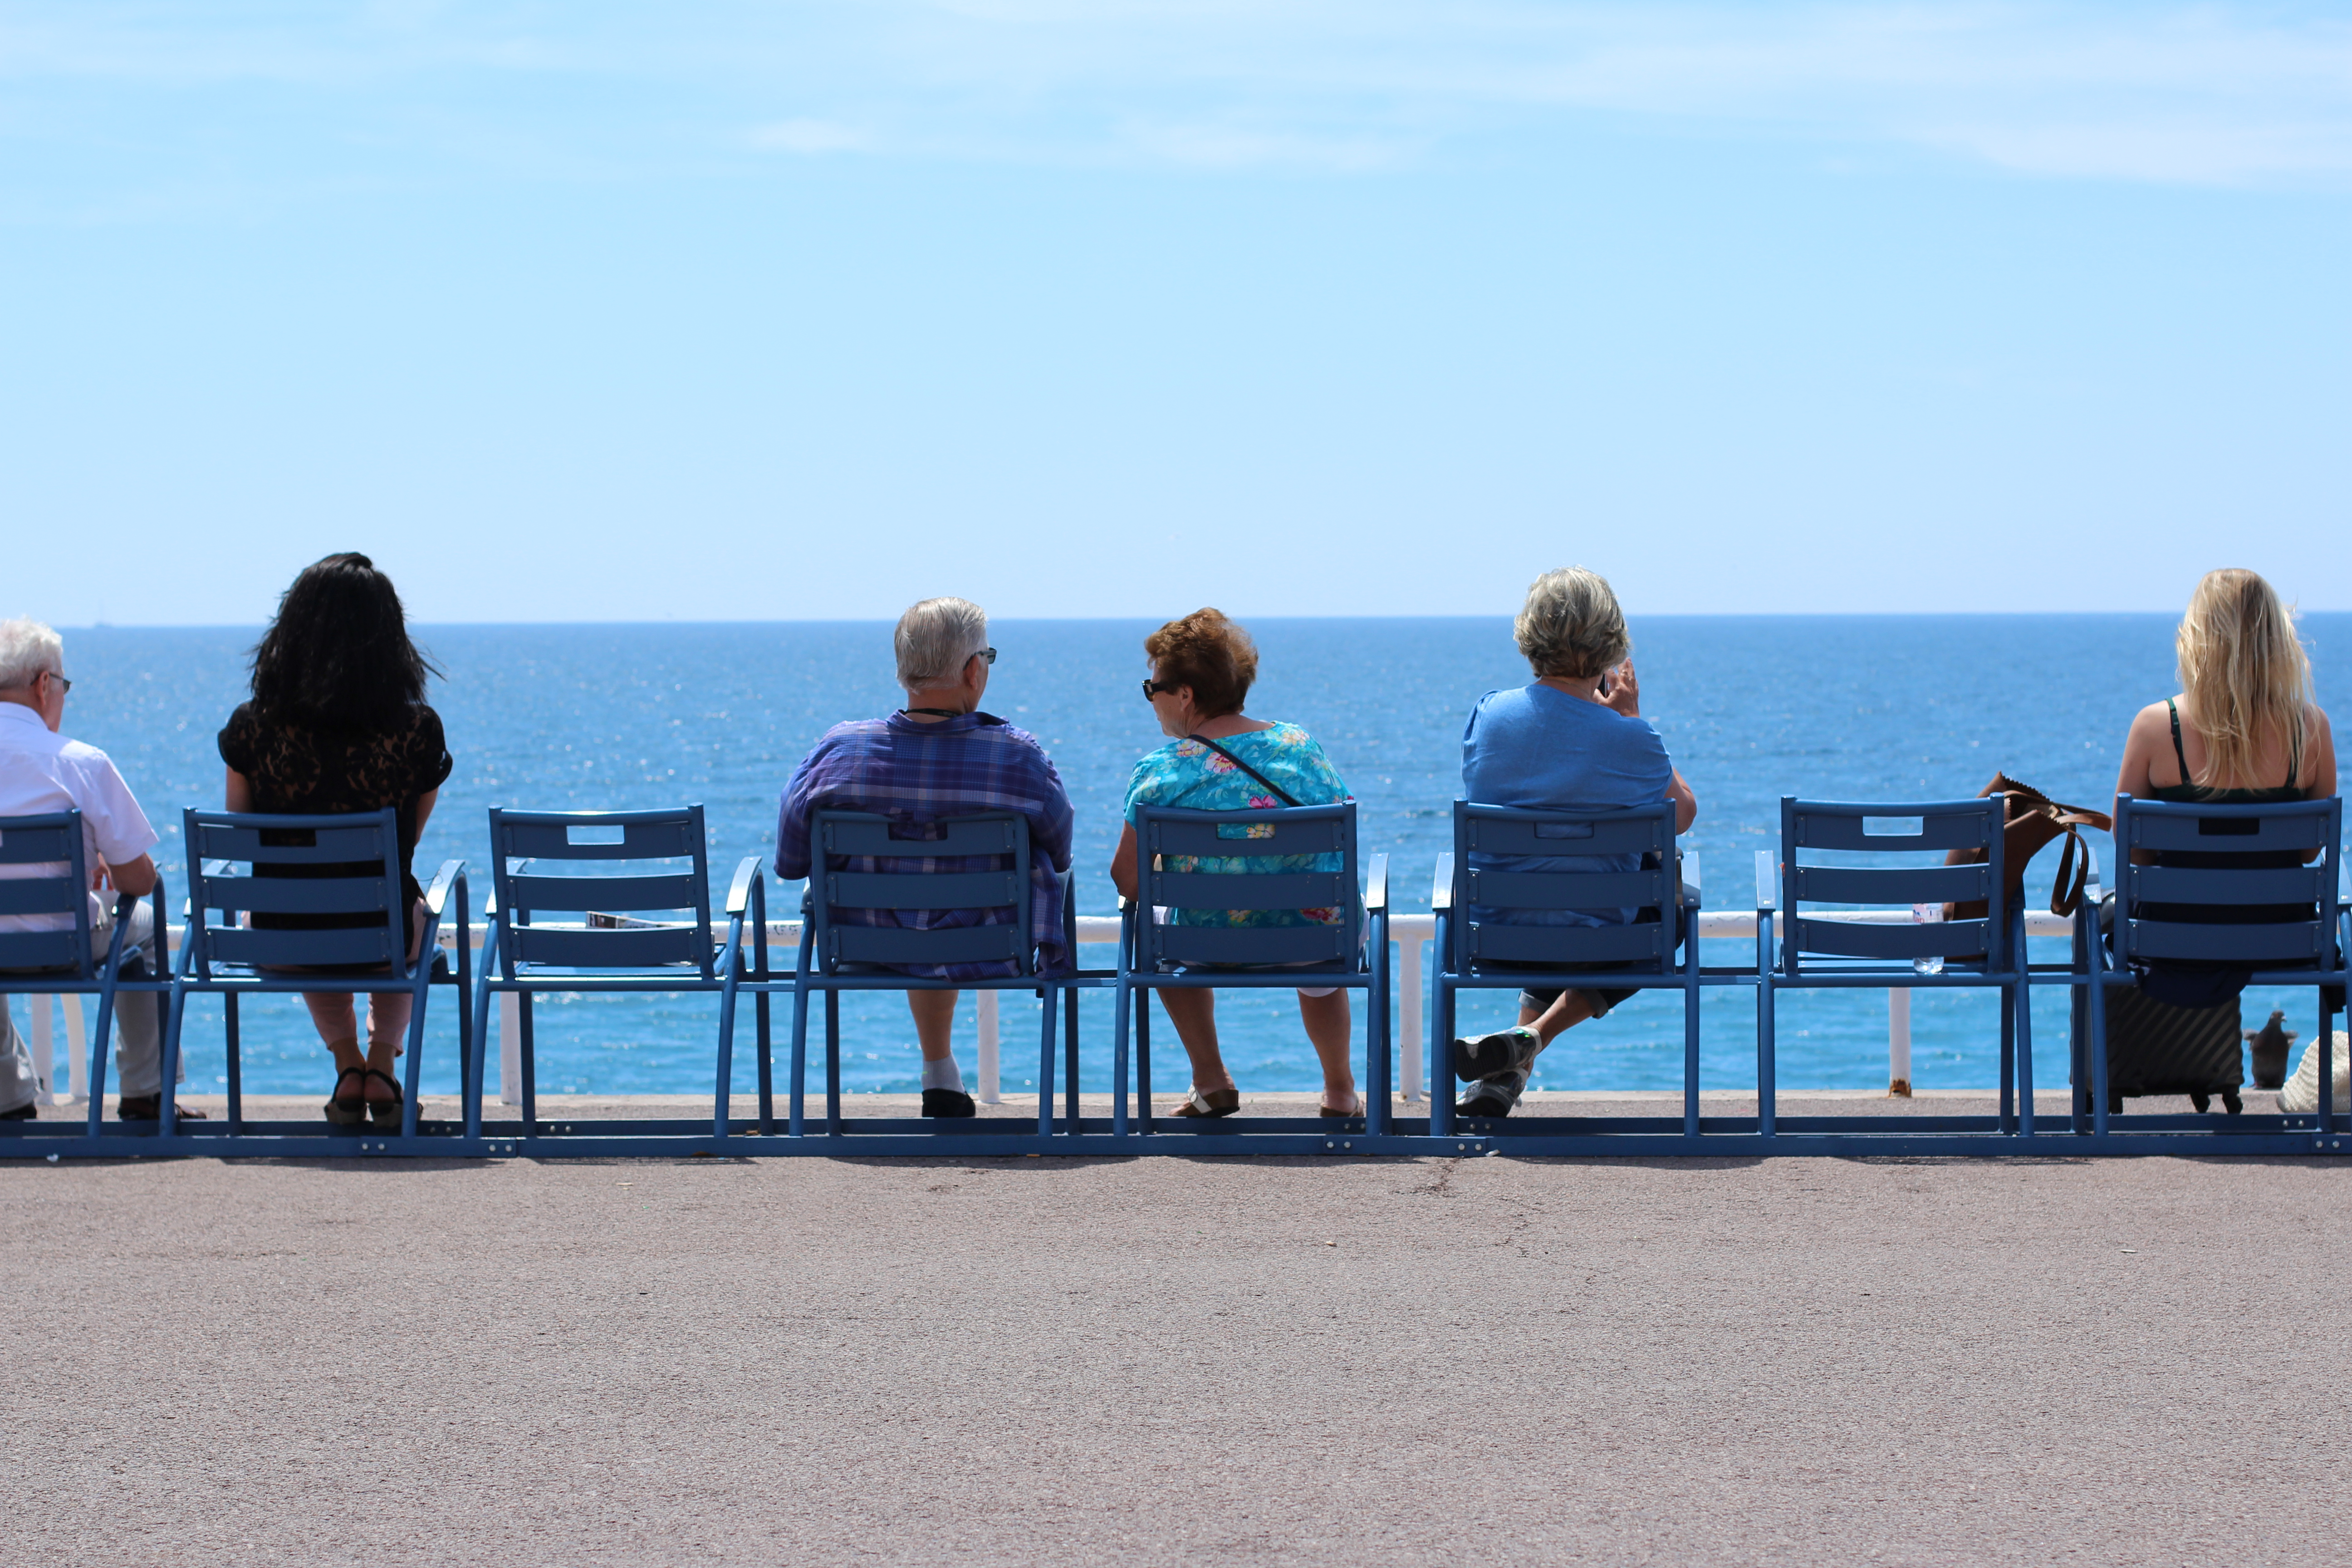 Blue chairs Promenade des Anglais - © Best Western Plus Hotel Massena Nice